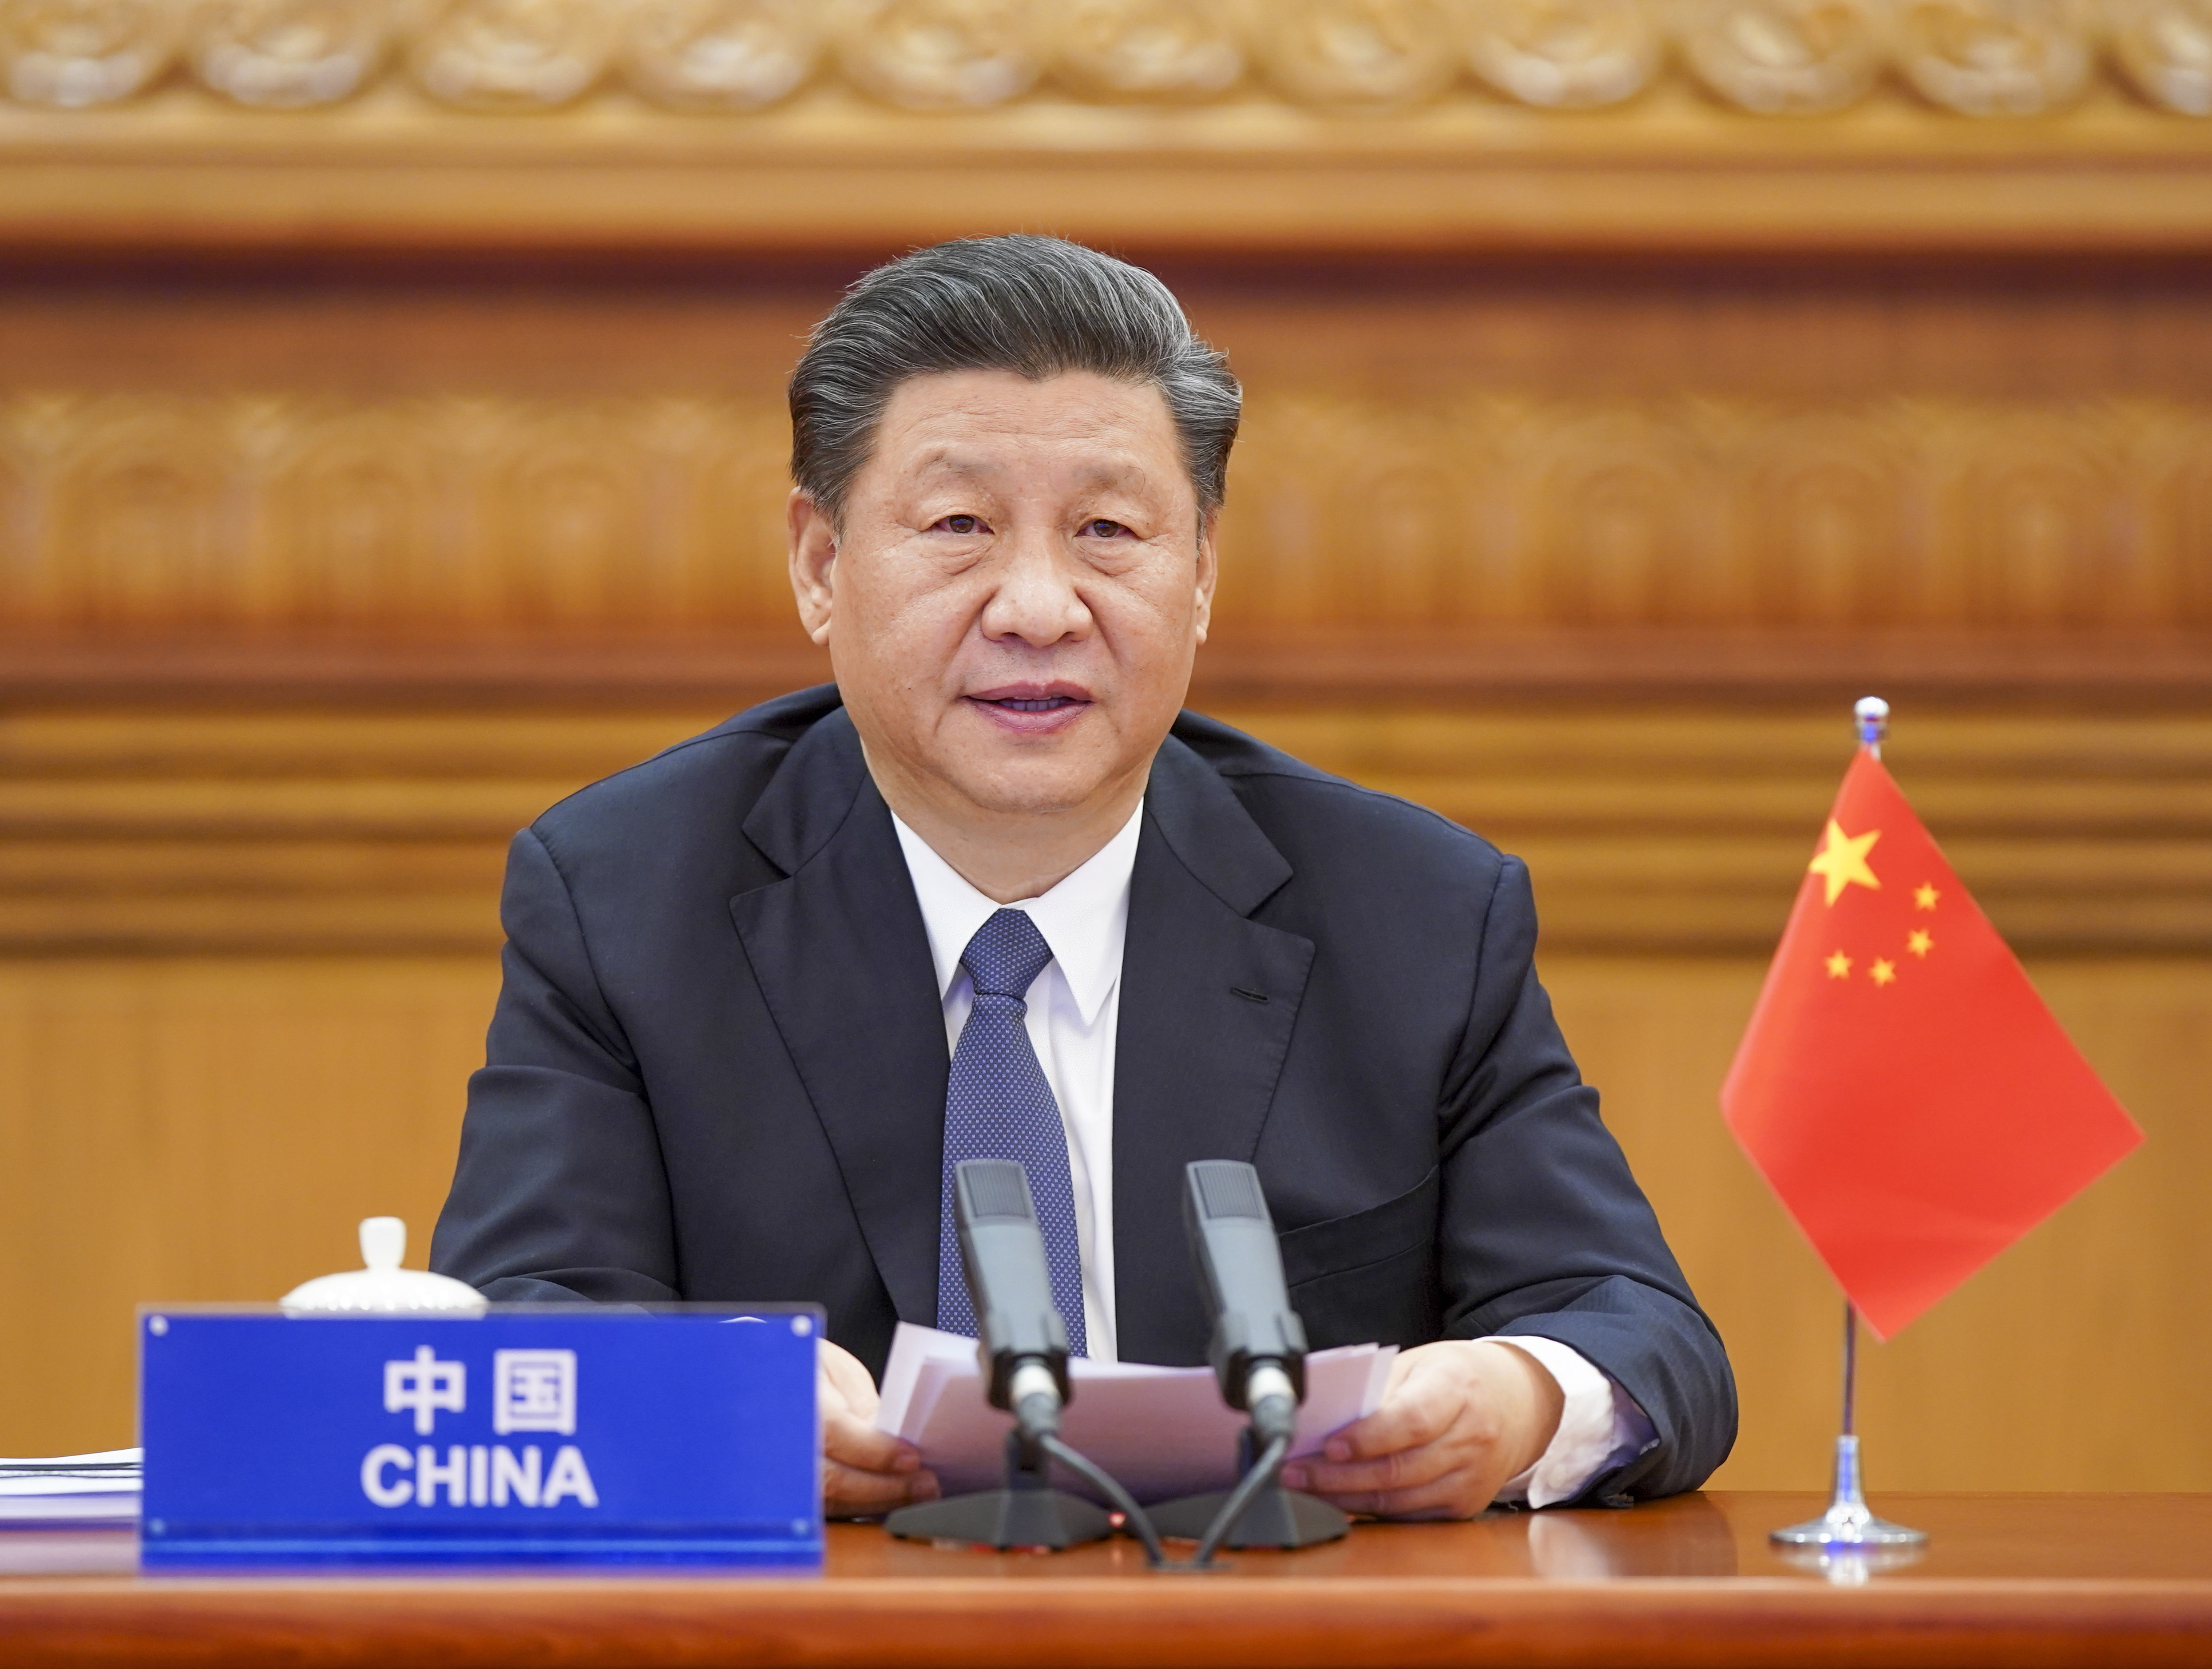 Chinese President Xi Jinping attends the G20 Extraordinary Virtual Leaders' Summit